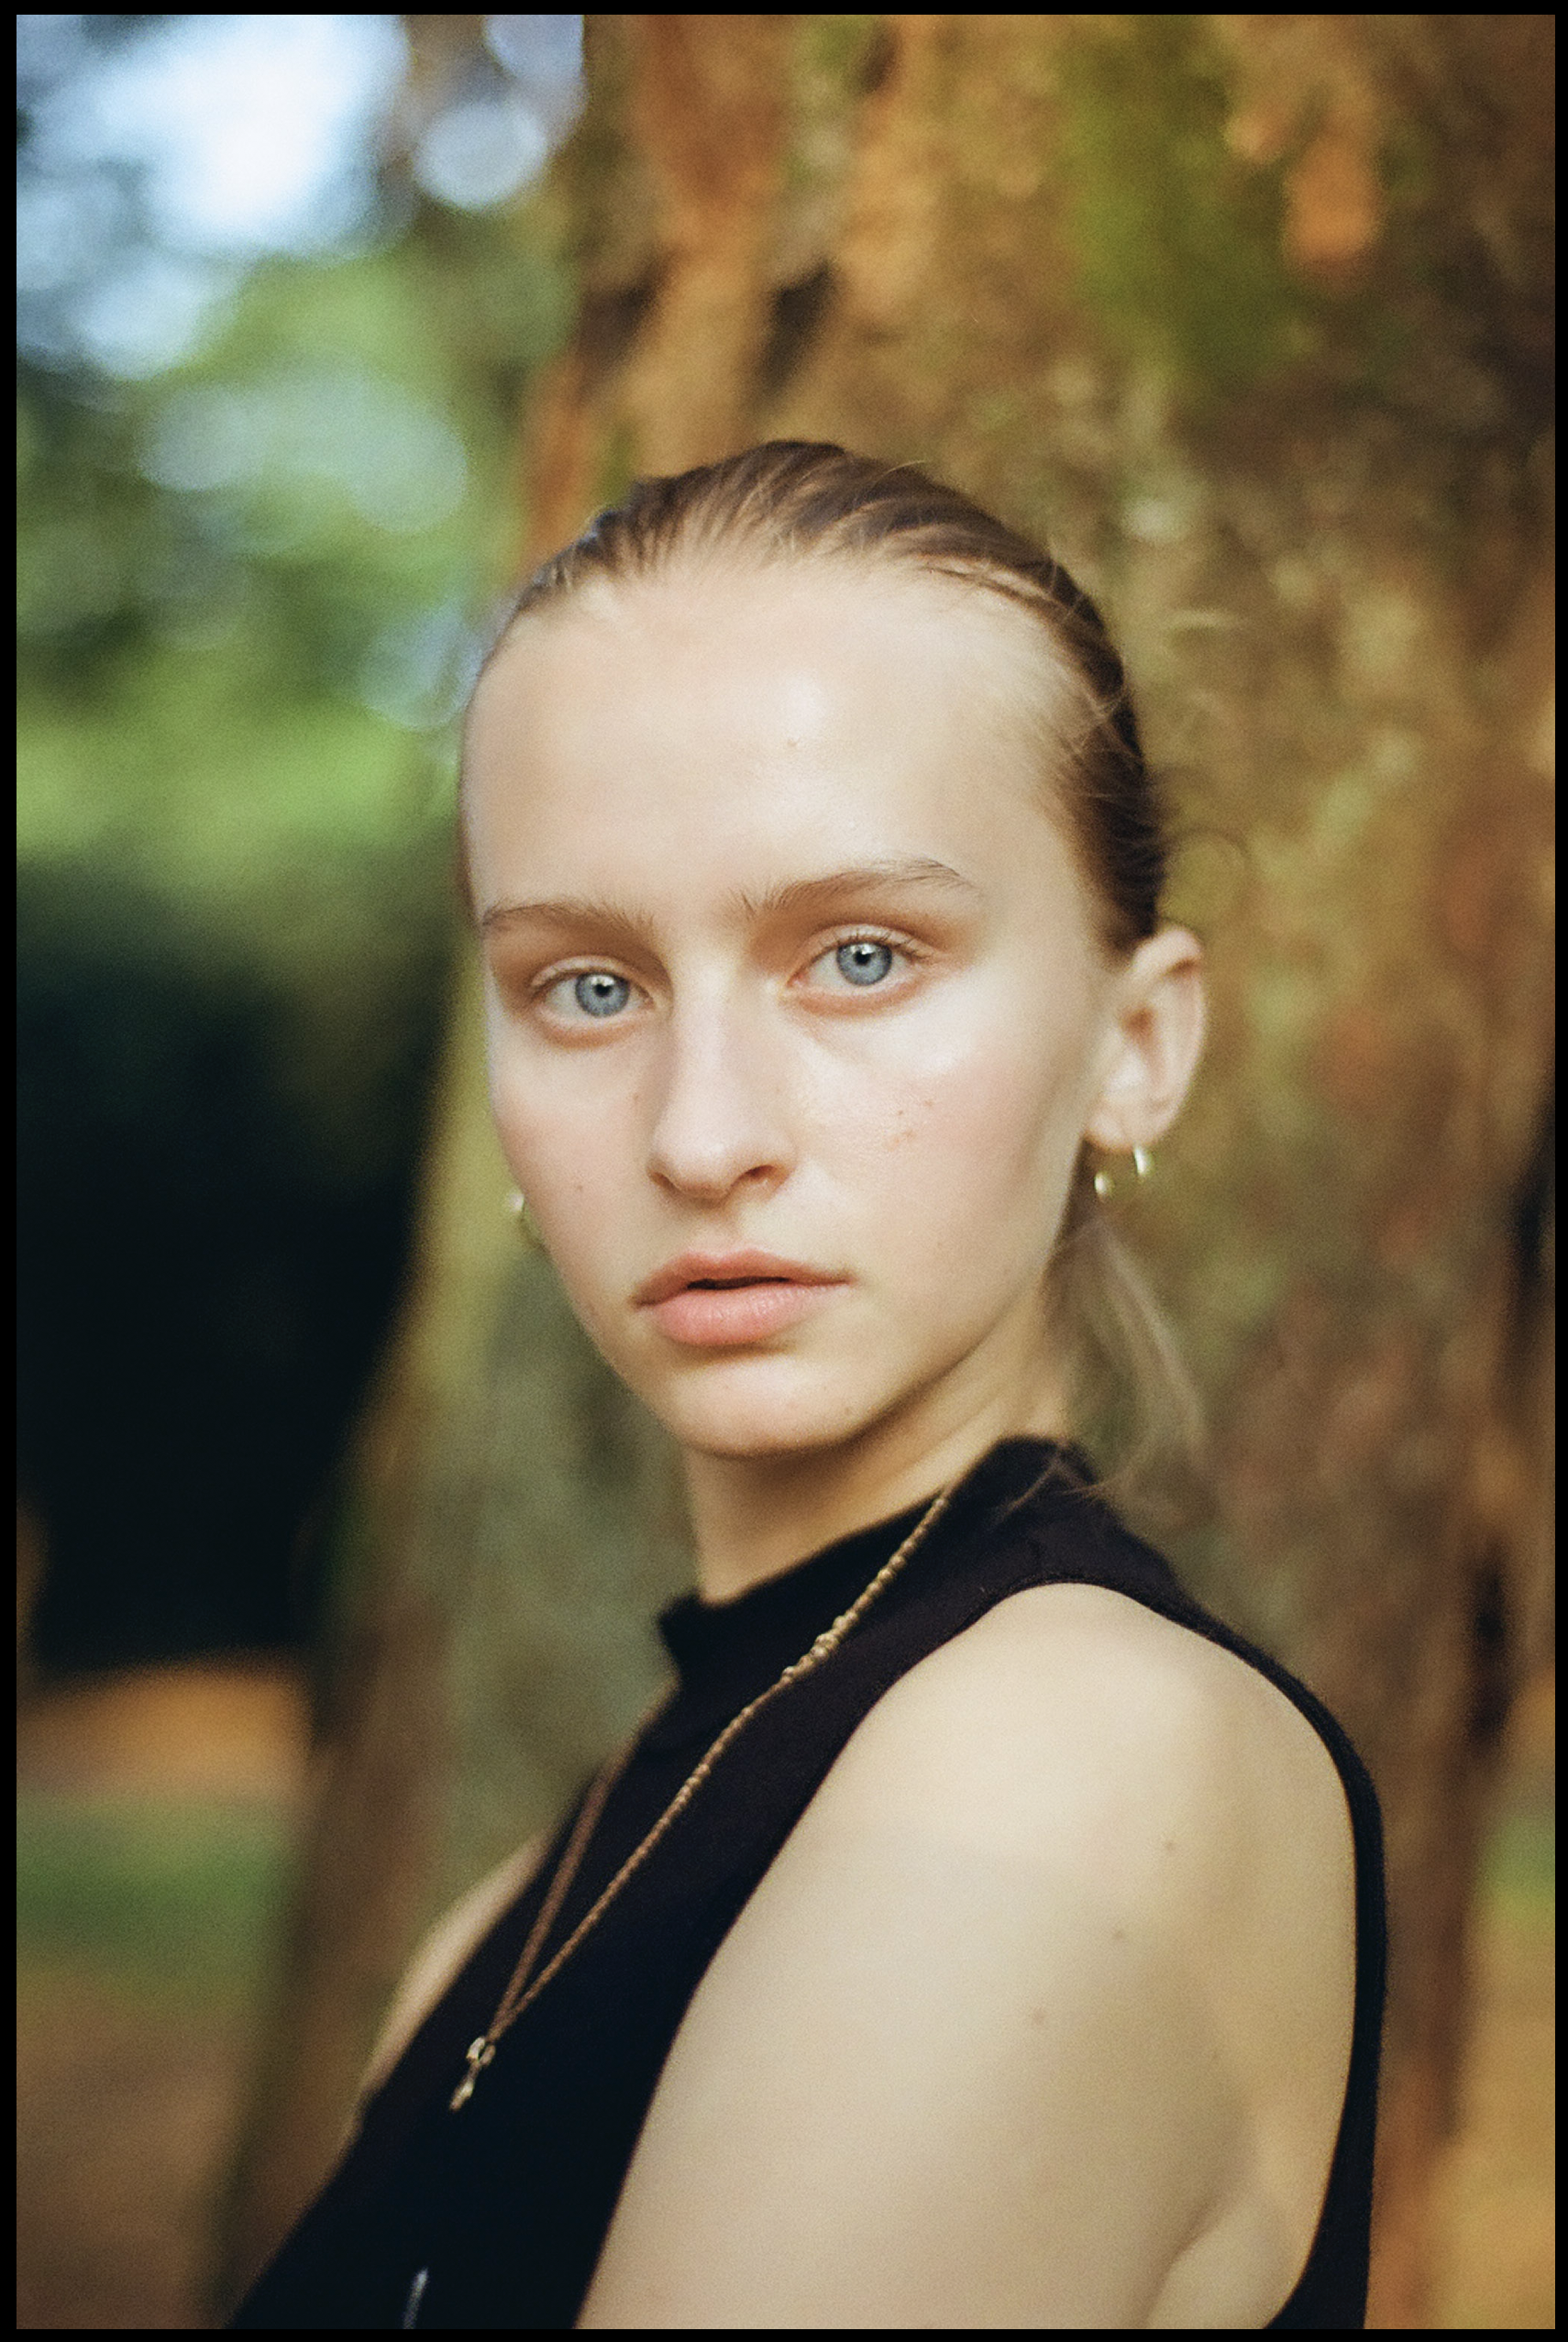 Justyna / Model